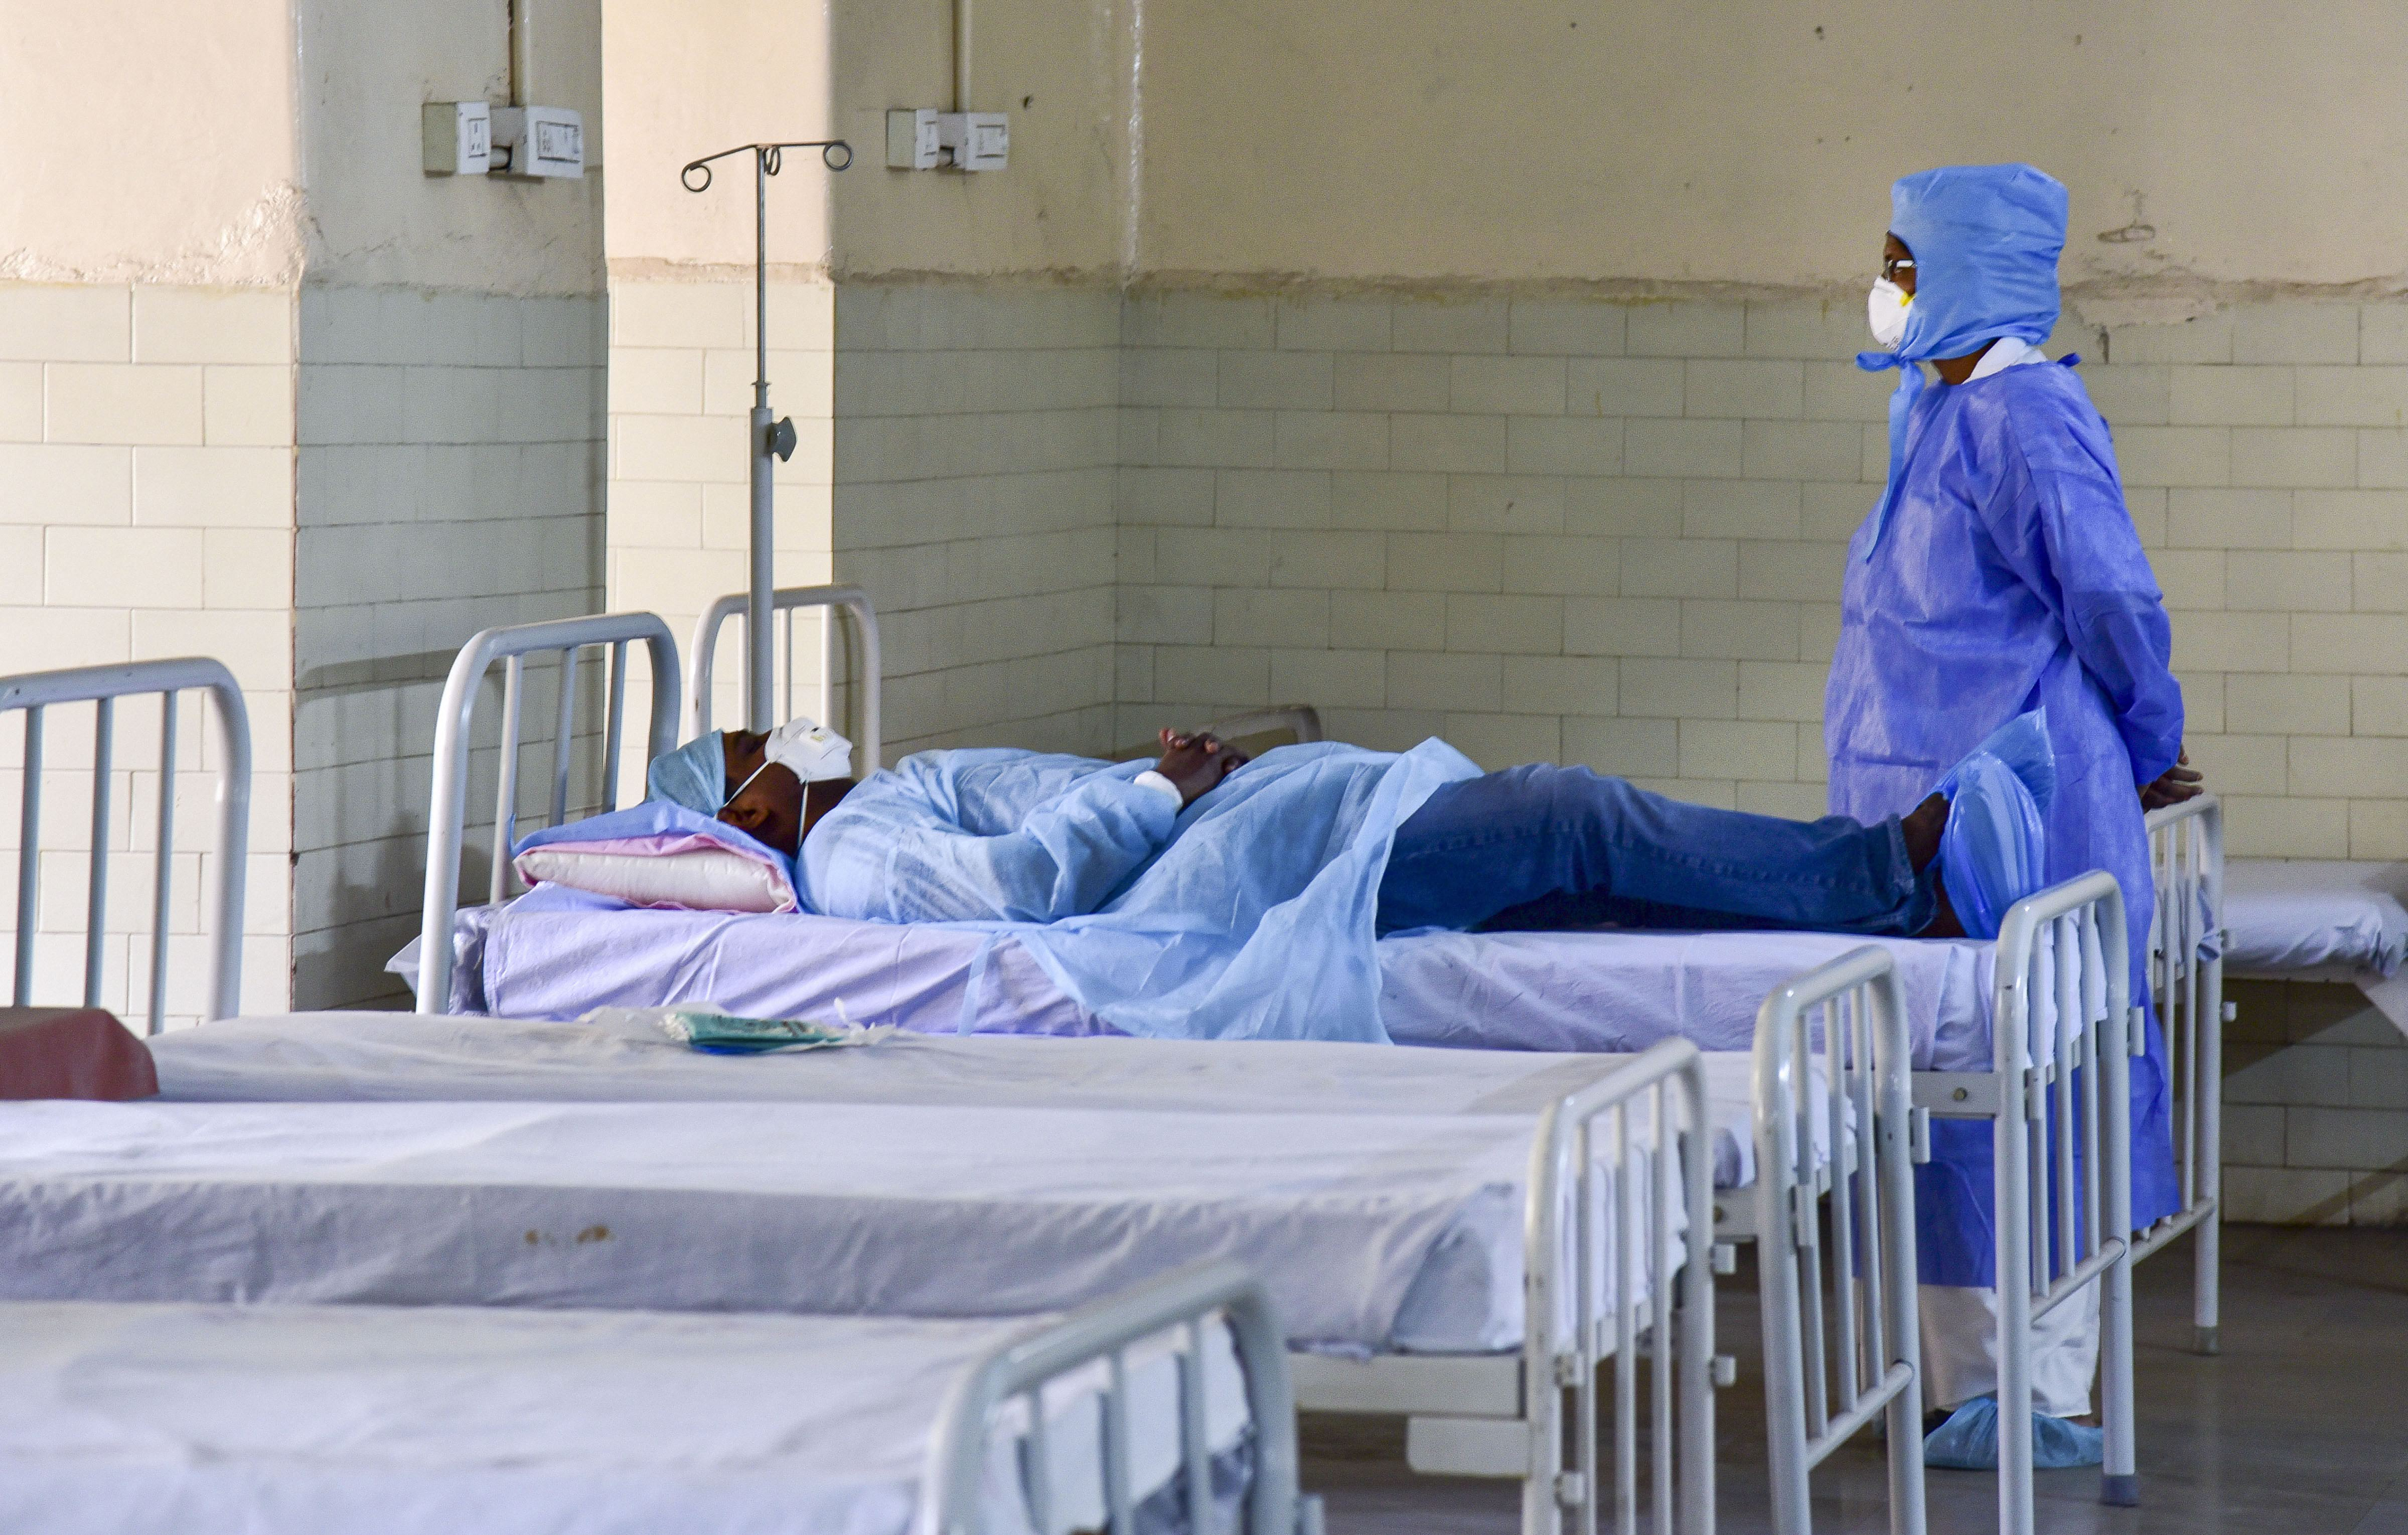 Hyderabad: A medic looks on at a patient who has shown positive symptoms for coronavirus (COVID -19) at an isolation ward in Hyderabad, Tuesday, March 10, 2020. (Credit: PTI)